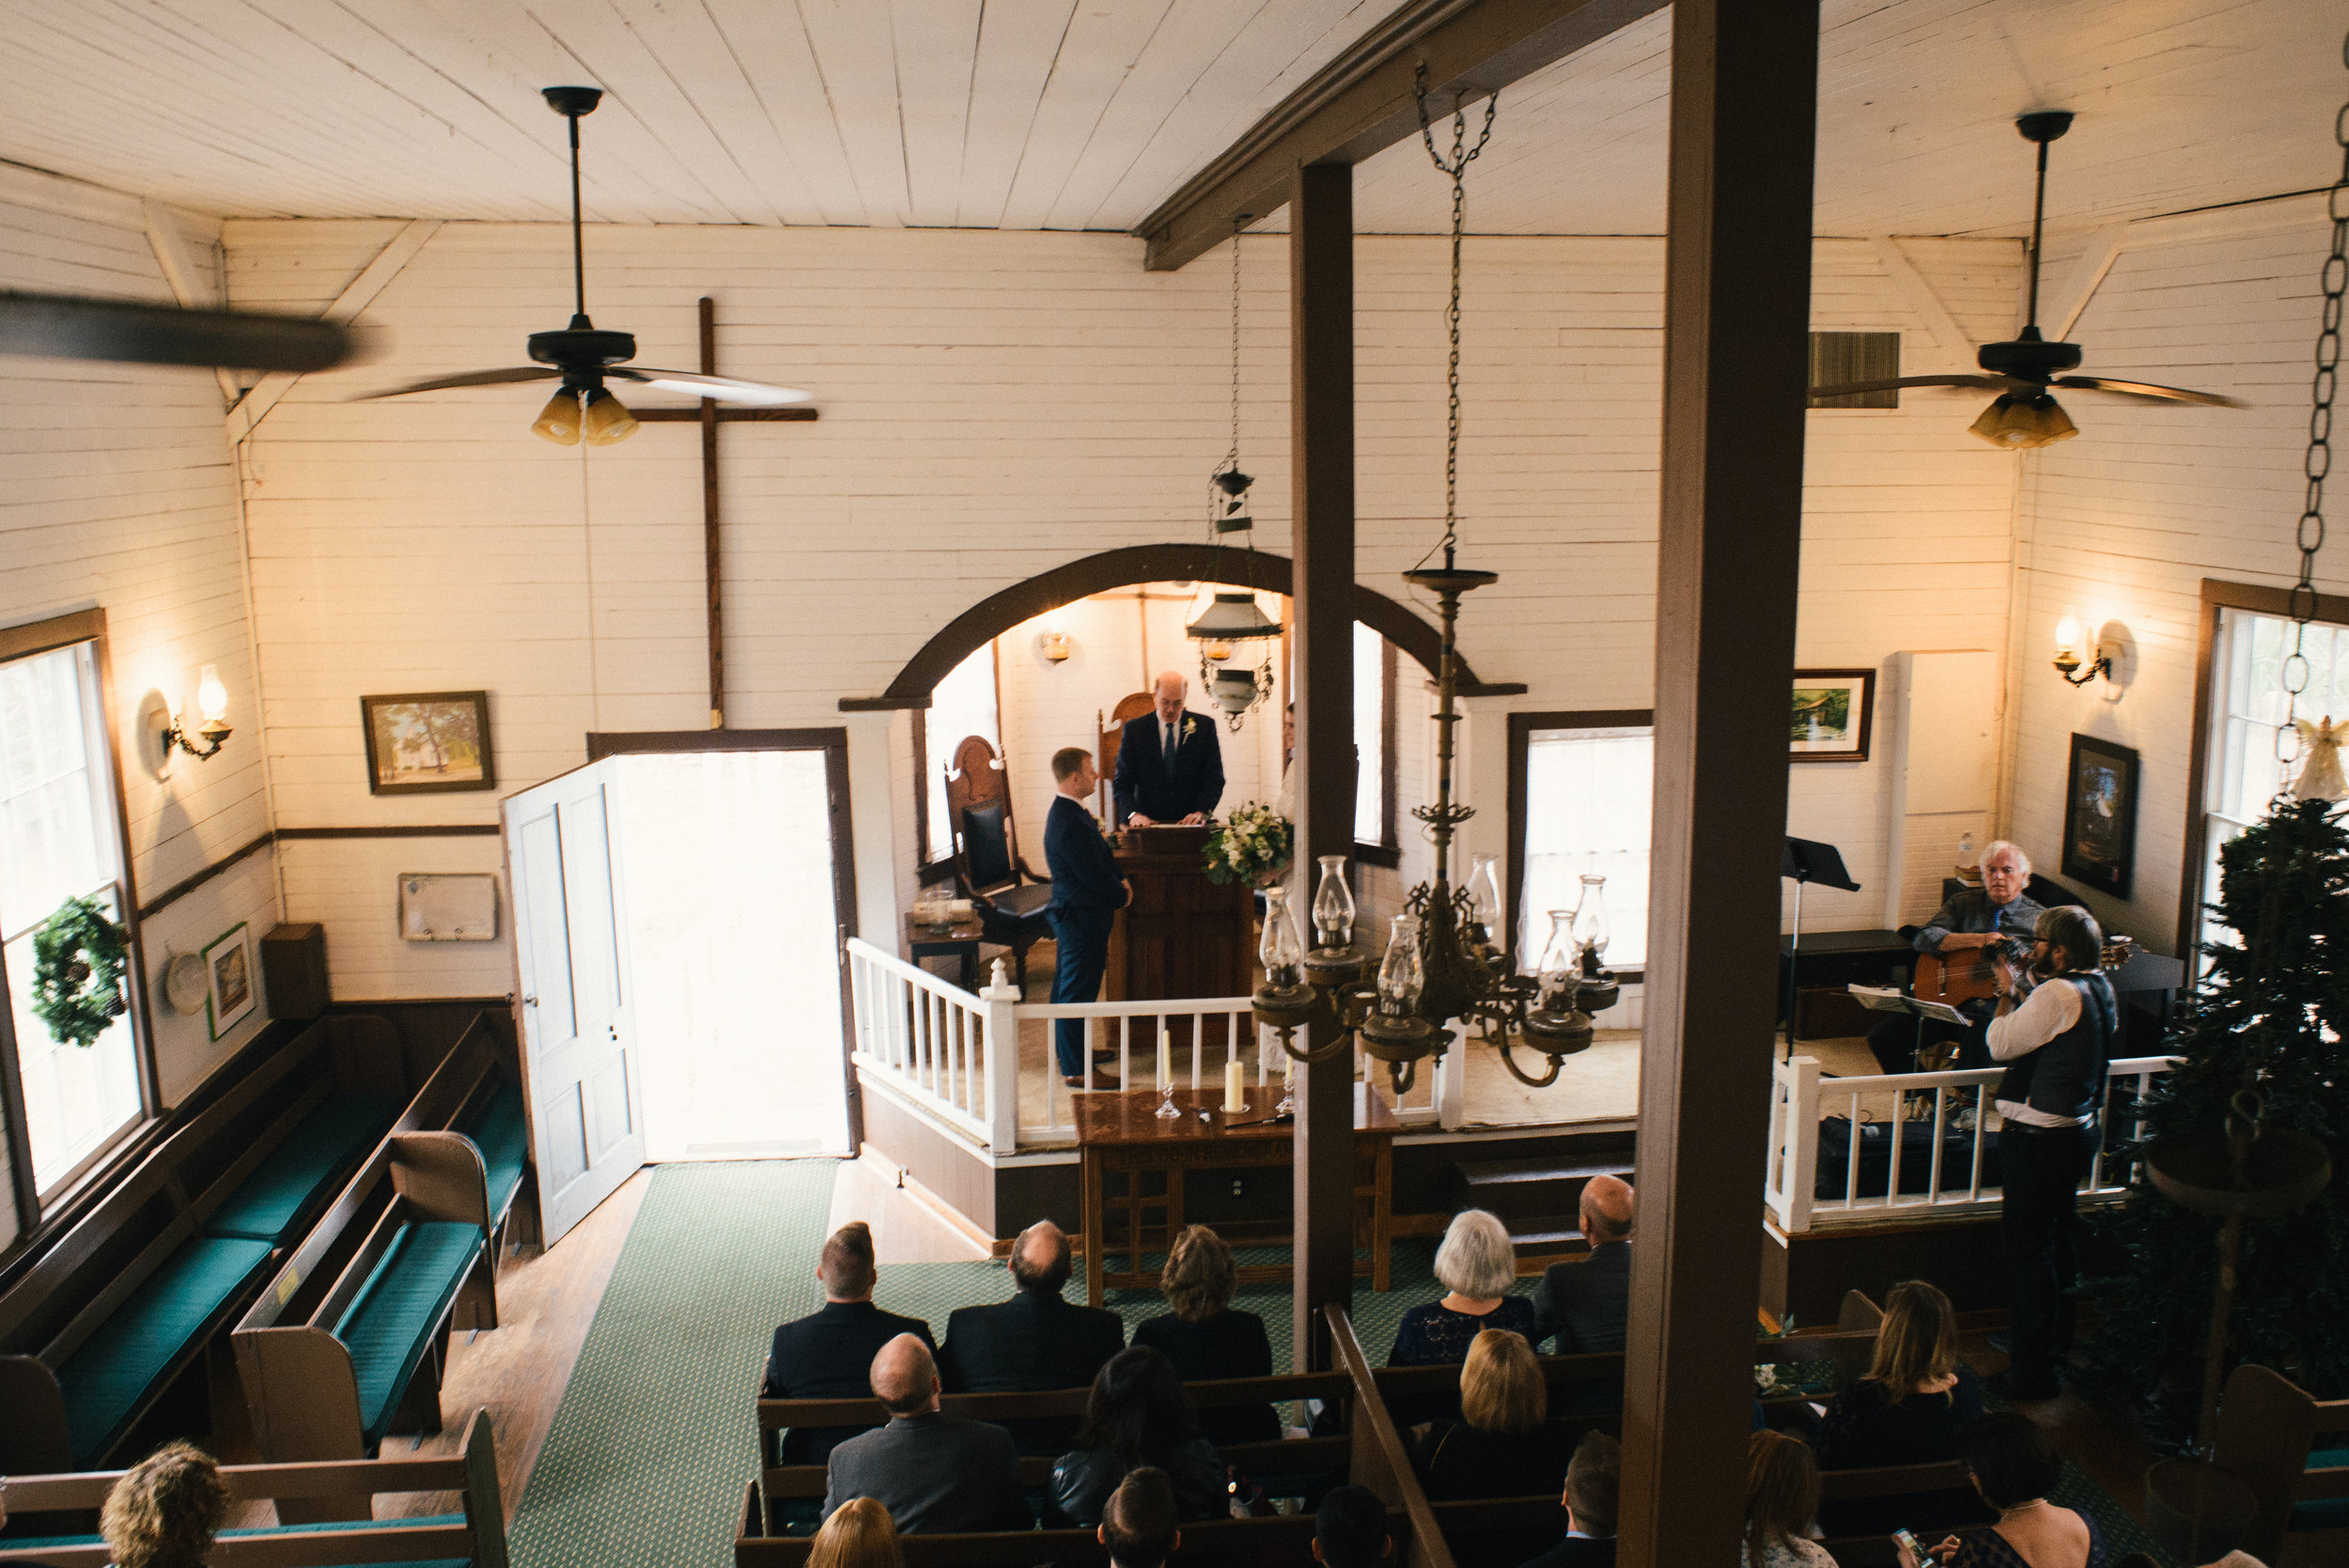 emily-and-david-daufuskie-island-wedding-december-wedding-meg-hill-photo- (129 of 728).jpg